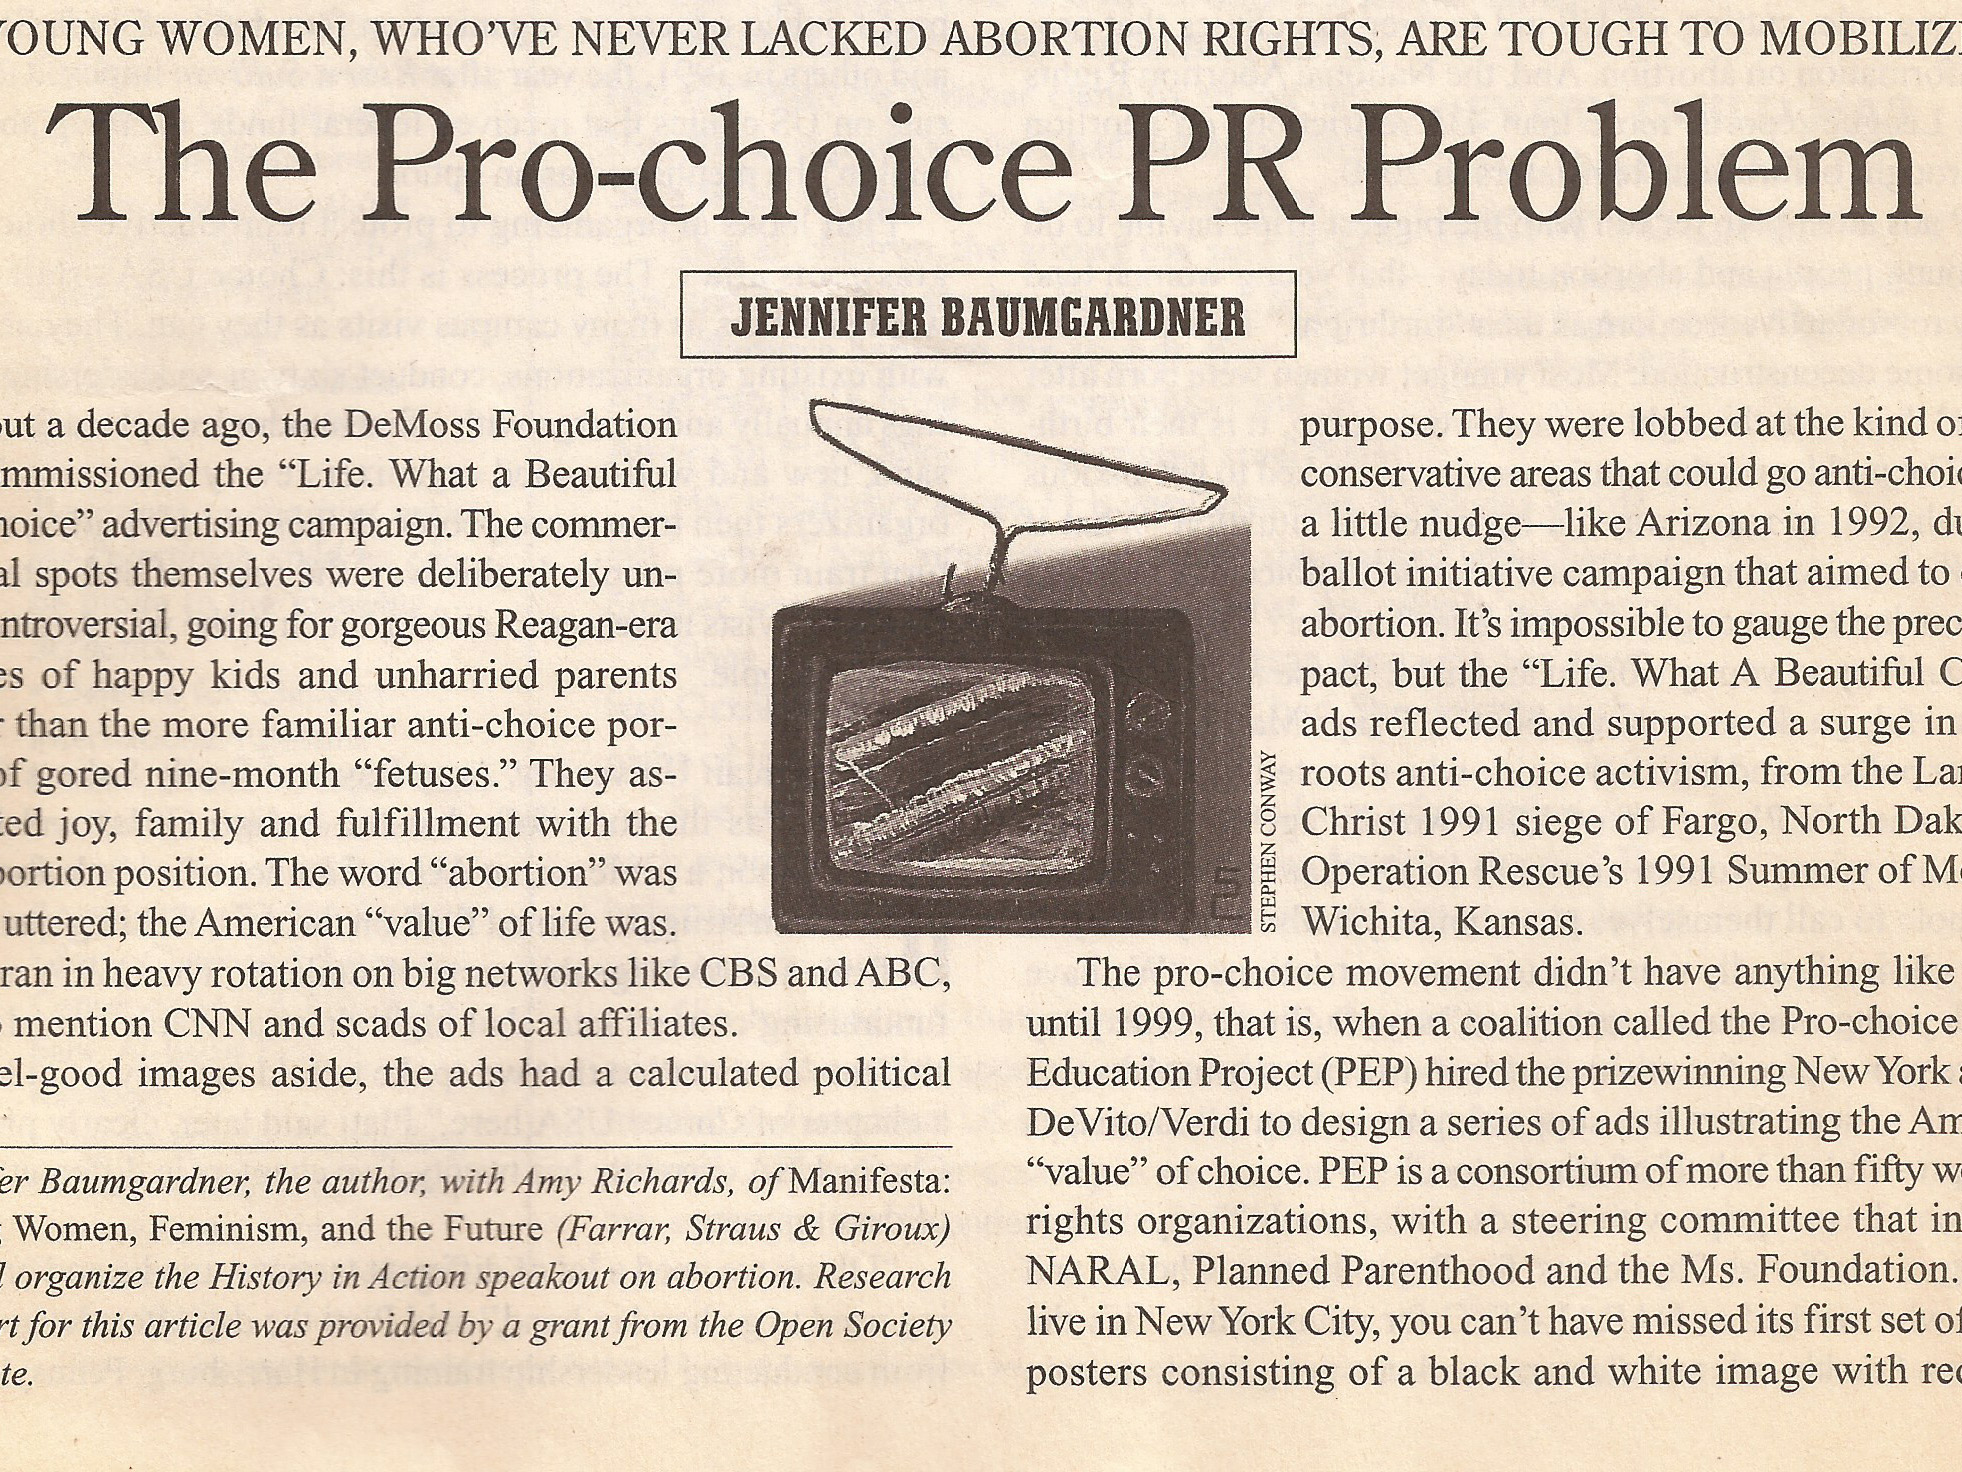 The Pro-Choice PR Problem  The Nation, 3/5/01